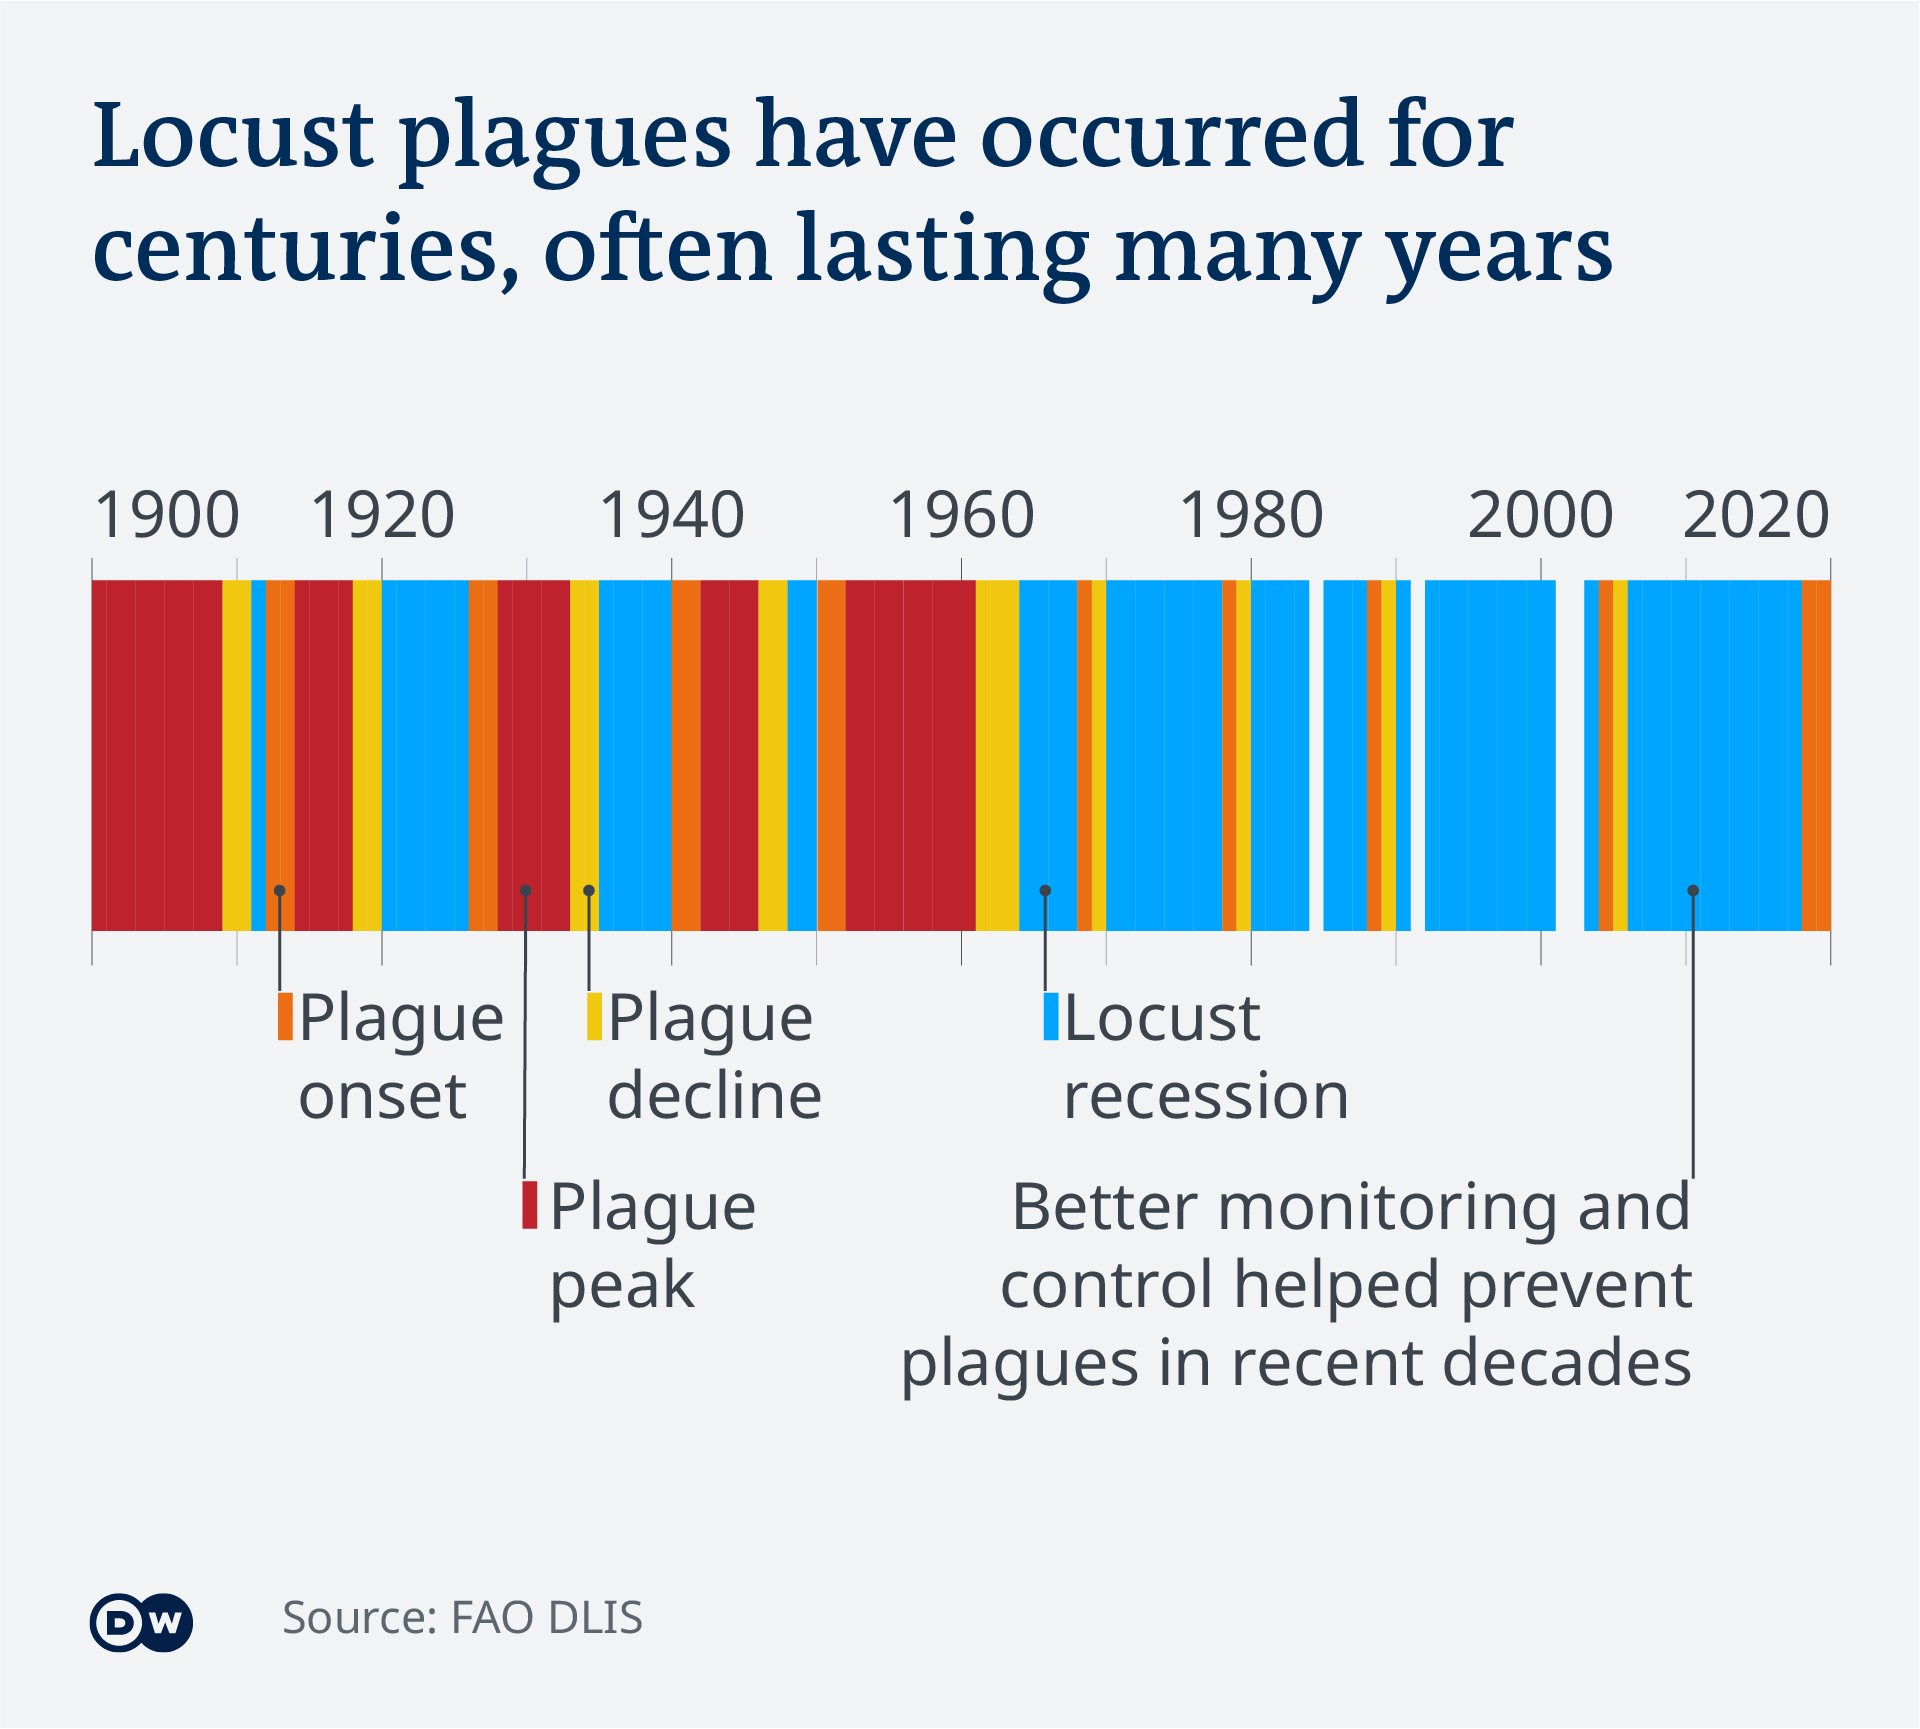 Data visualization historical timeline of locust outbreaks